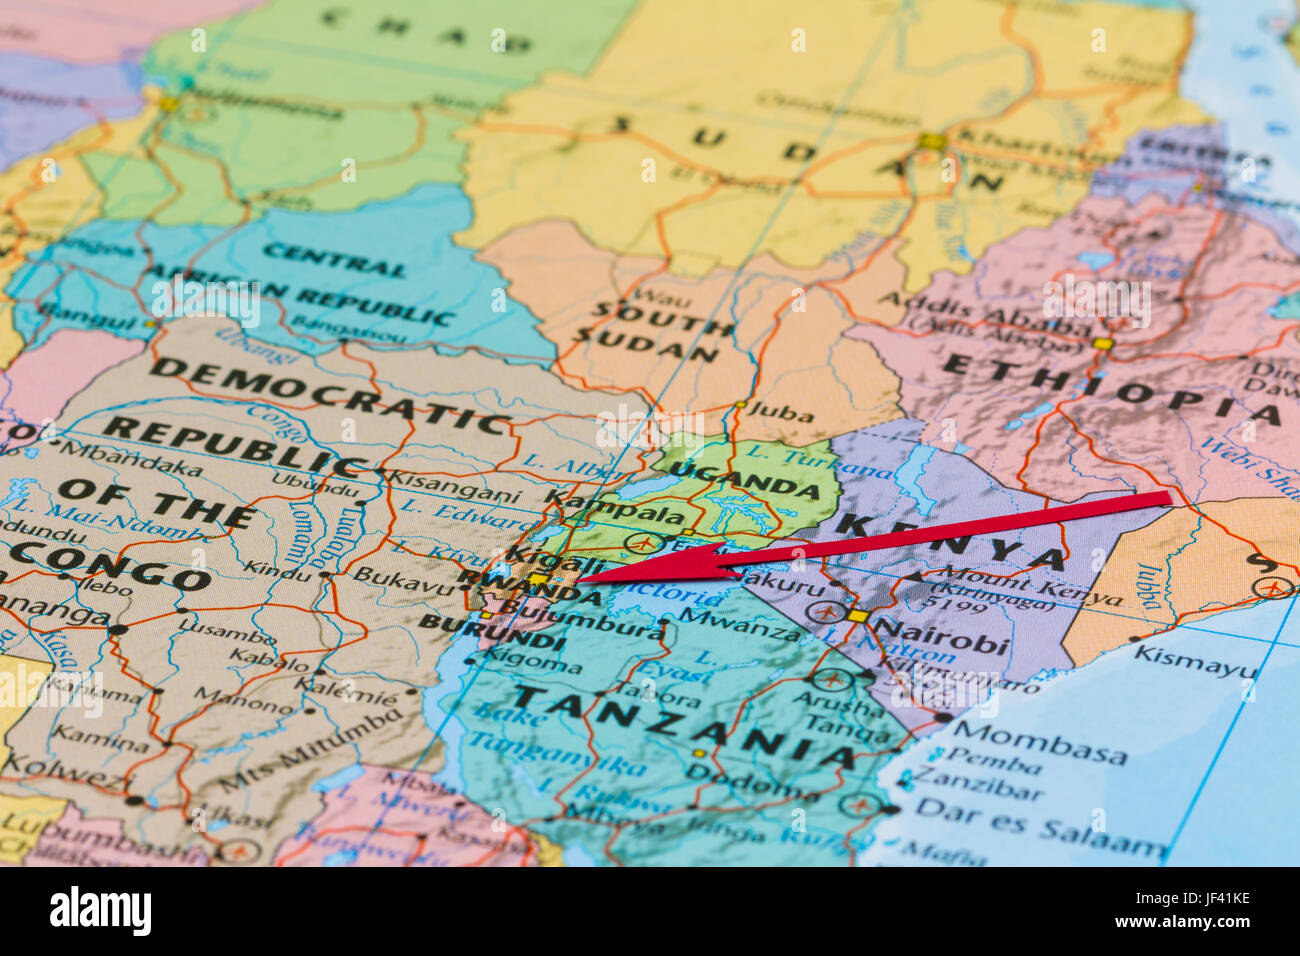 Photo of Rwanda. Country indicated by red arrow. Country on African continent. - Stock Image